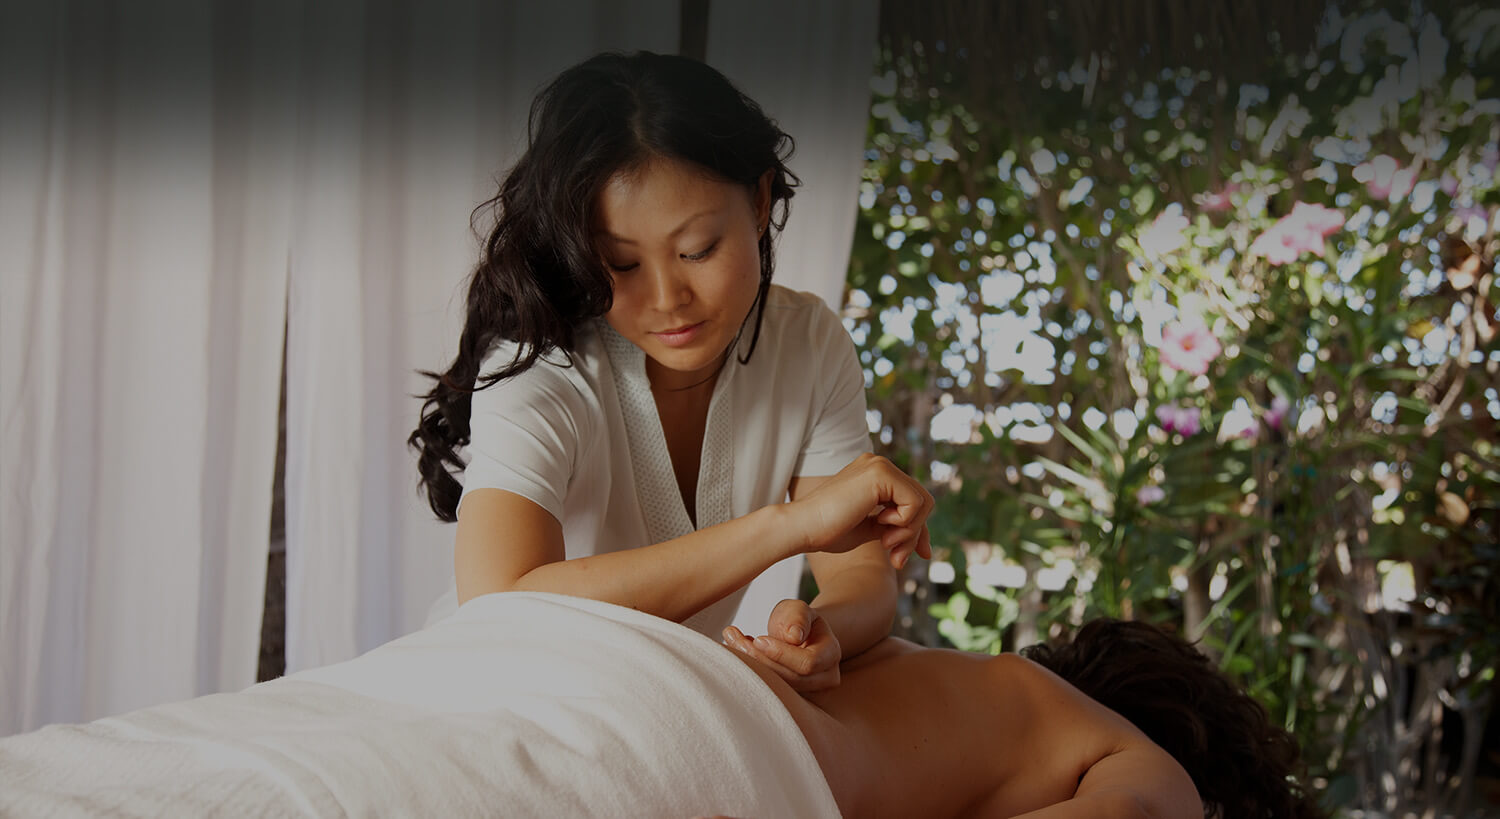 person getting a massage